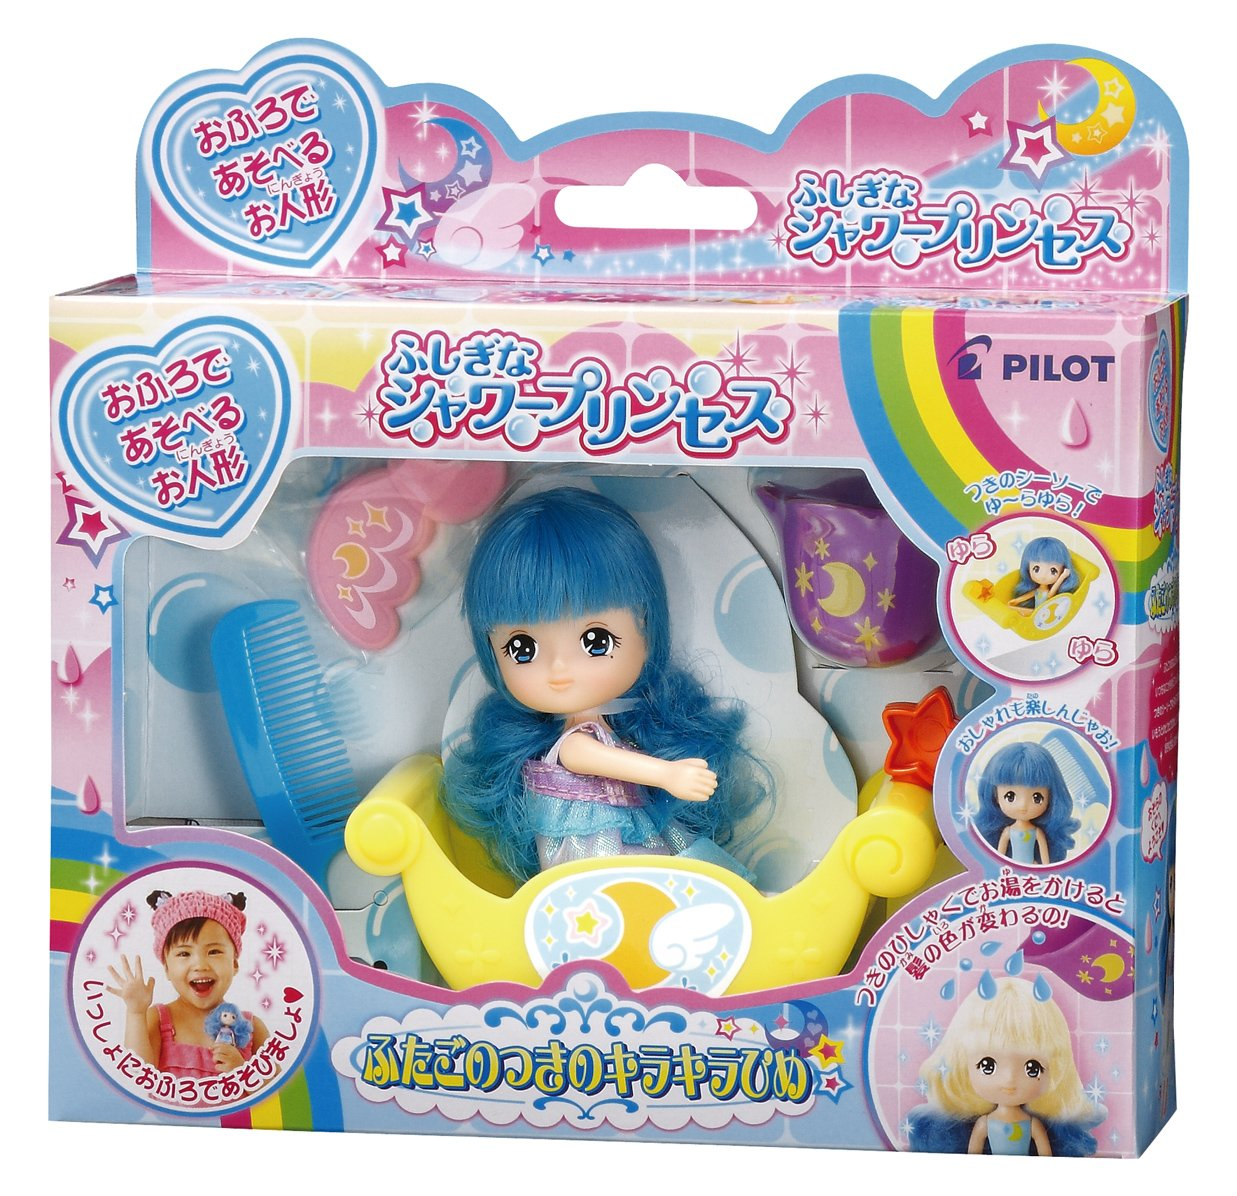 Glitter princess with a mysterious princess shower twins (japan import)